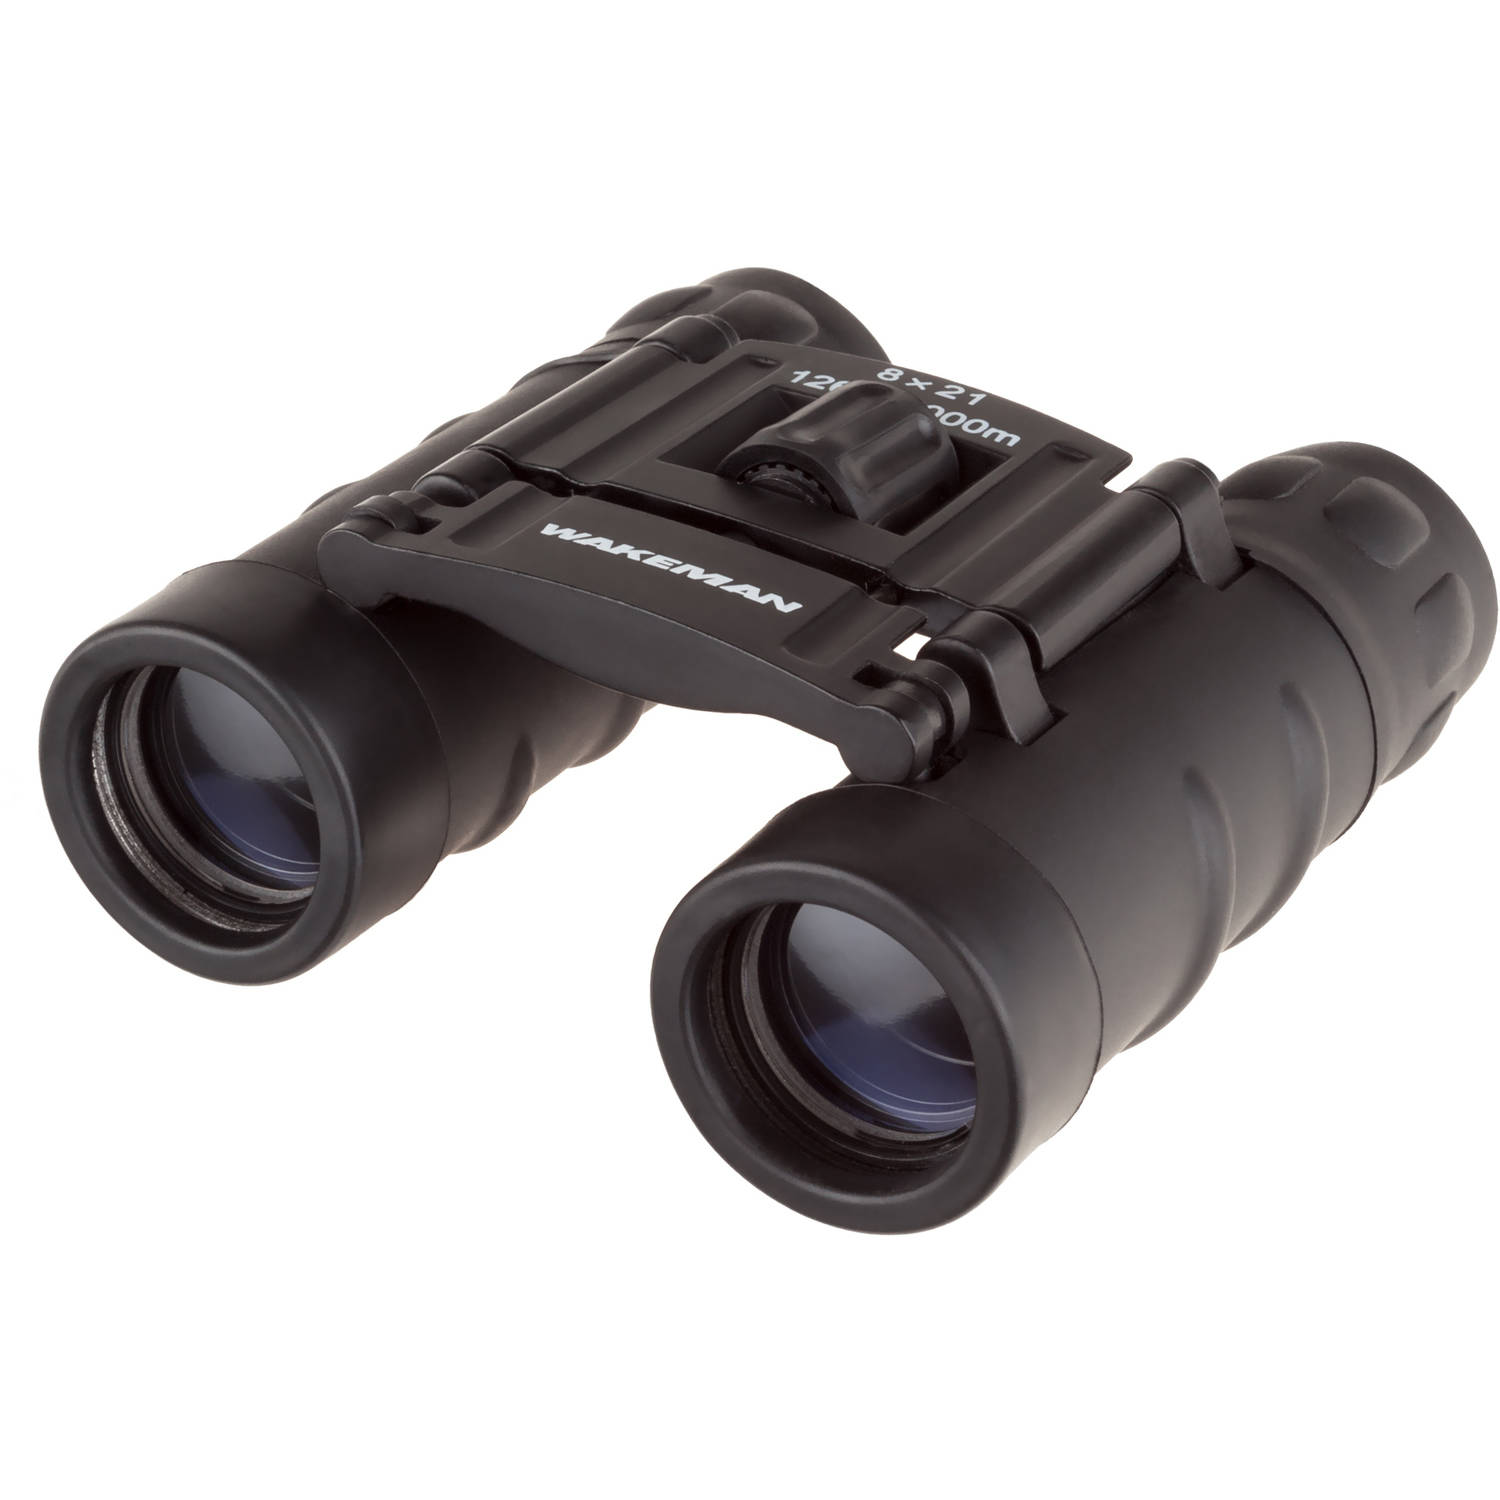 Pocket Sized Binoculars - Compact Folding Field Glasses with 8X Zoom and 1000 Yard Viewing Range for Hunting or Watching Wildlife by Wakeman Outdoors